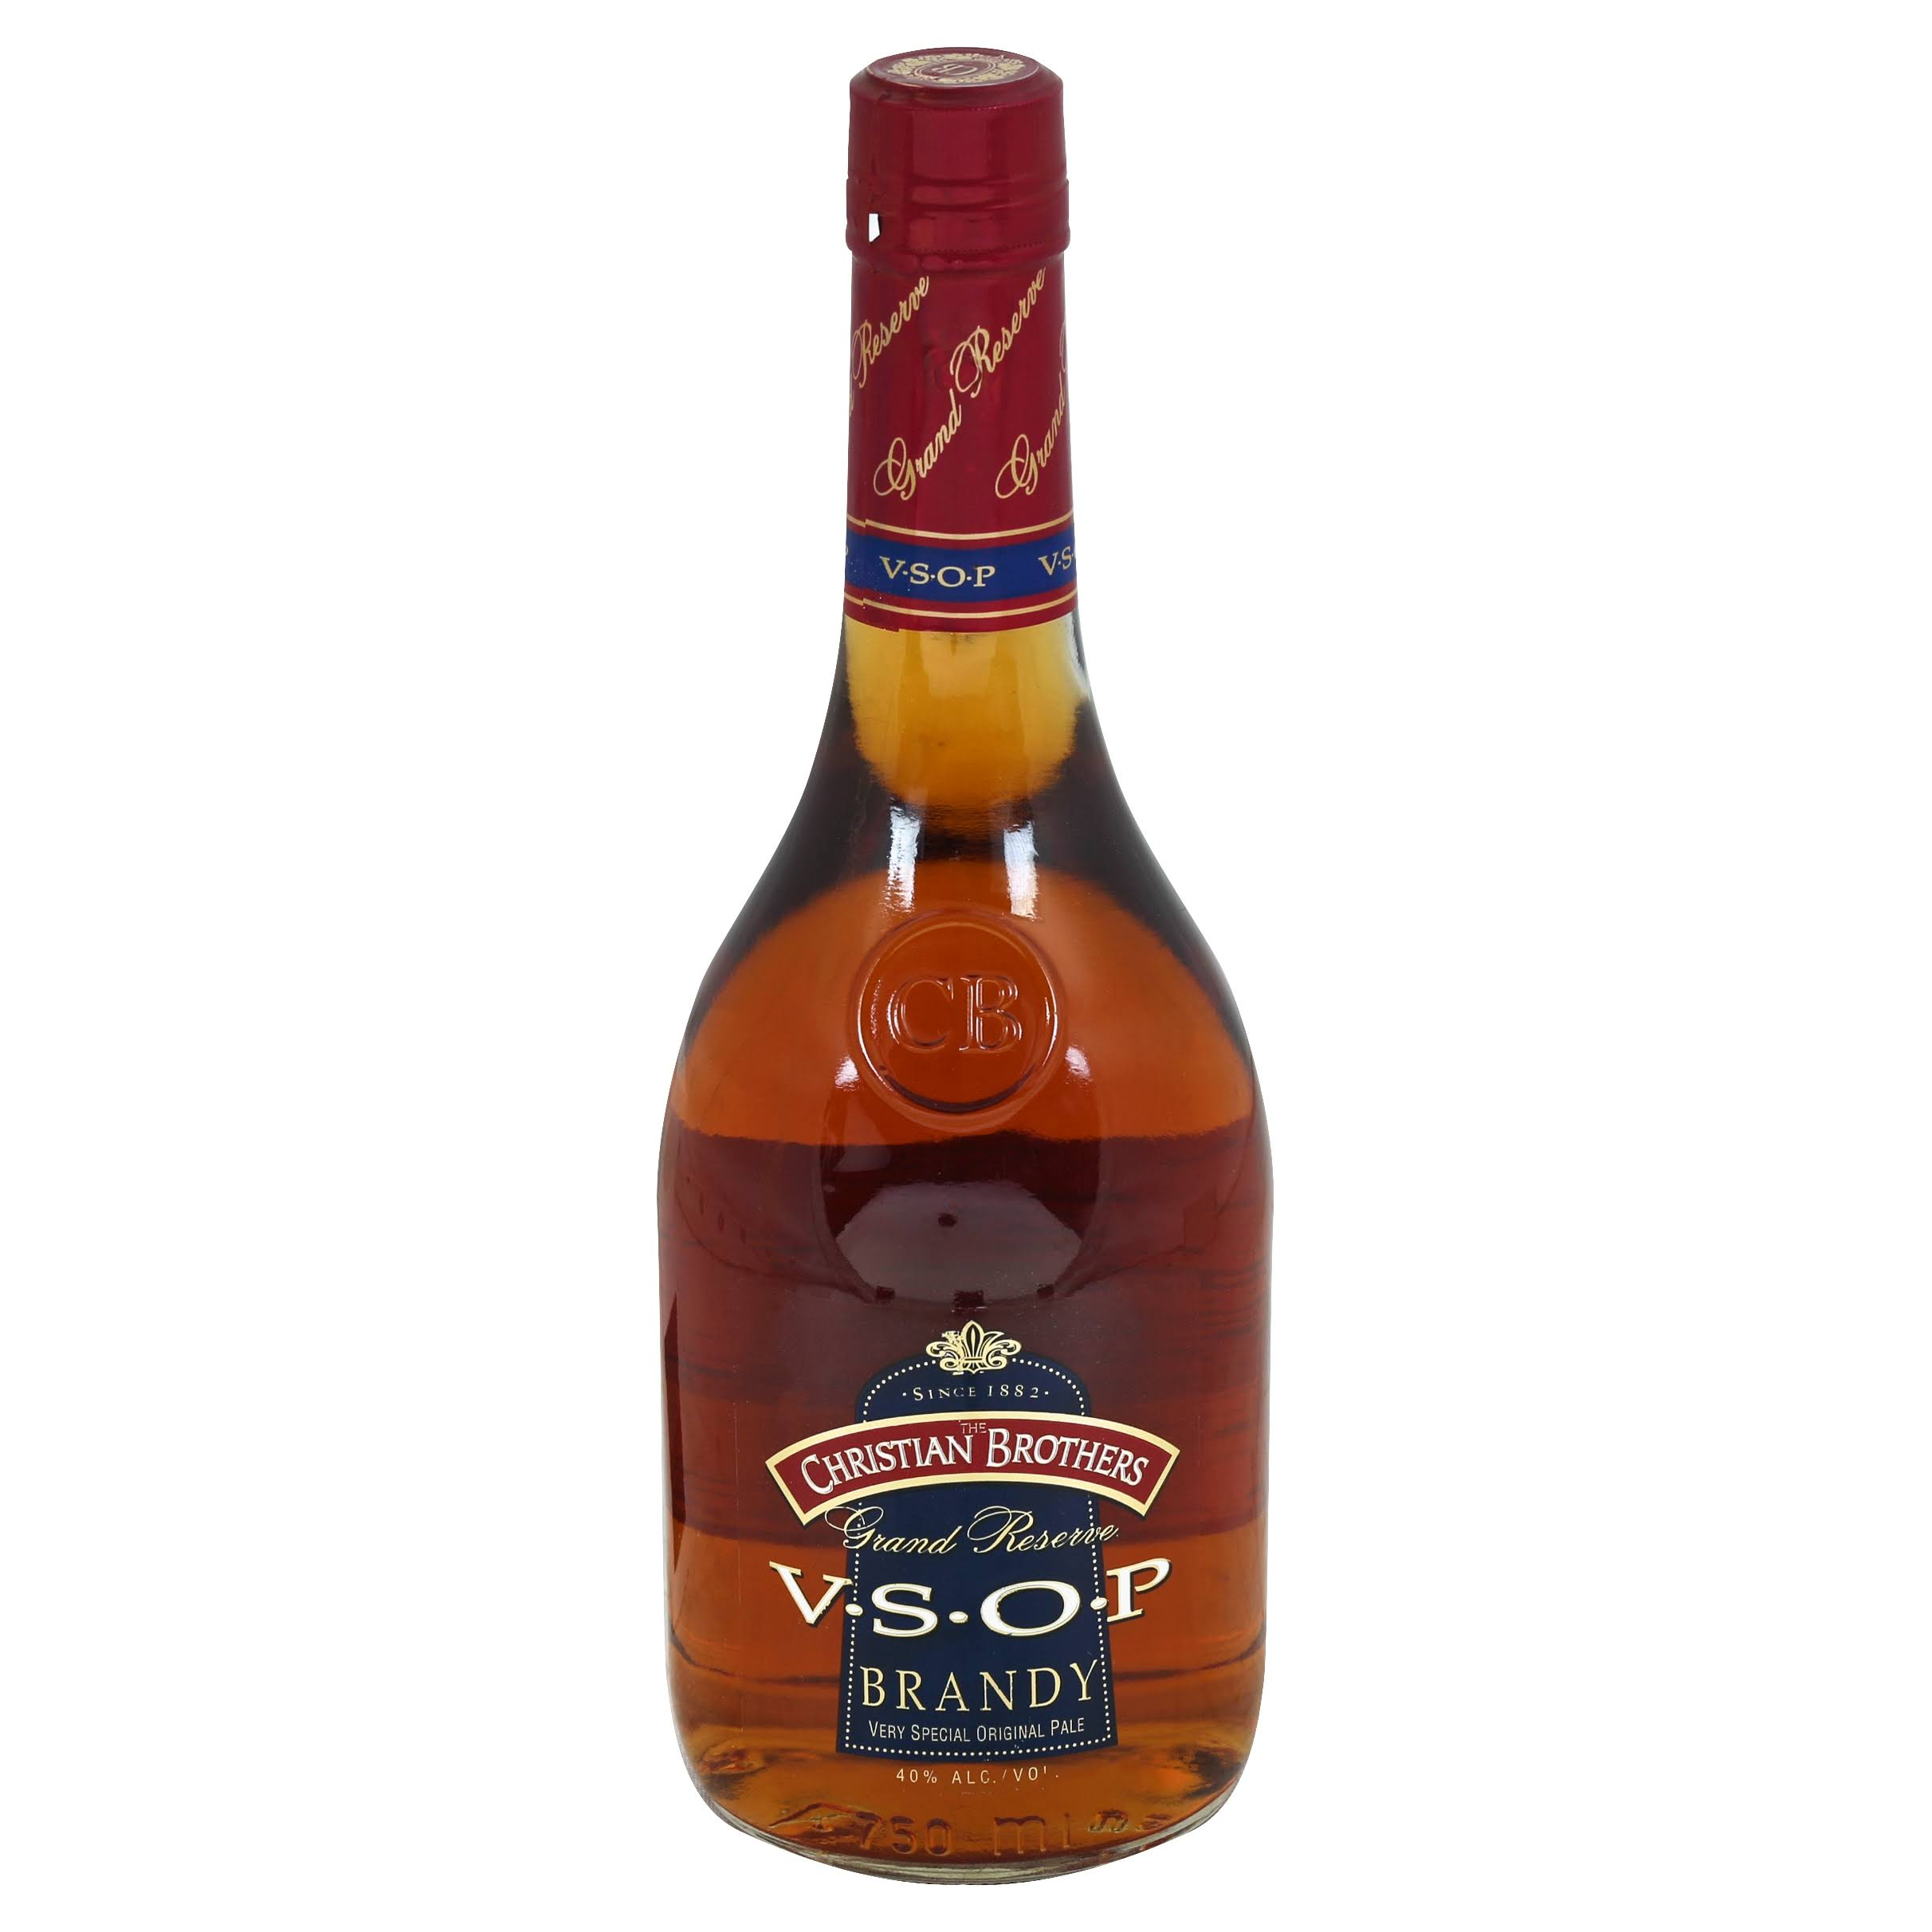 Christian Brothers Grand Reserve Vsop Brandy - 750ml